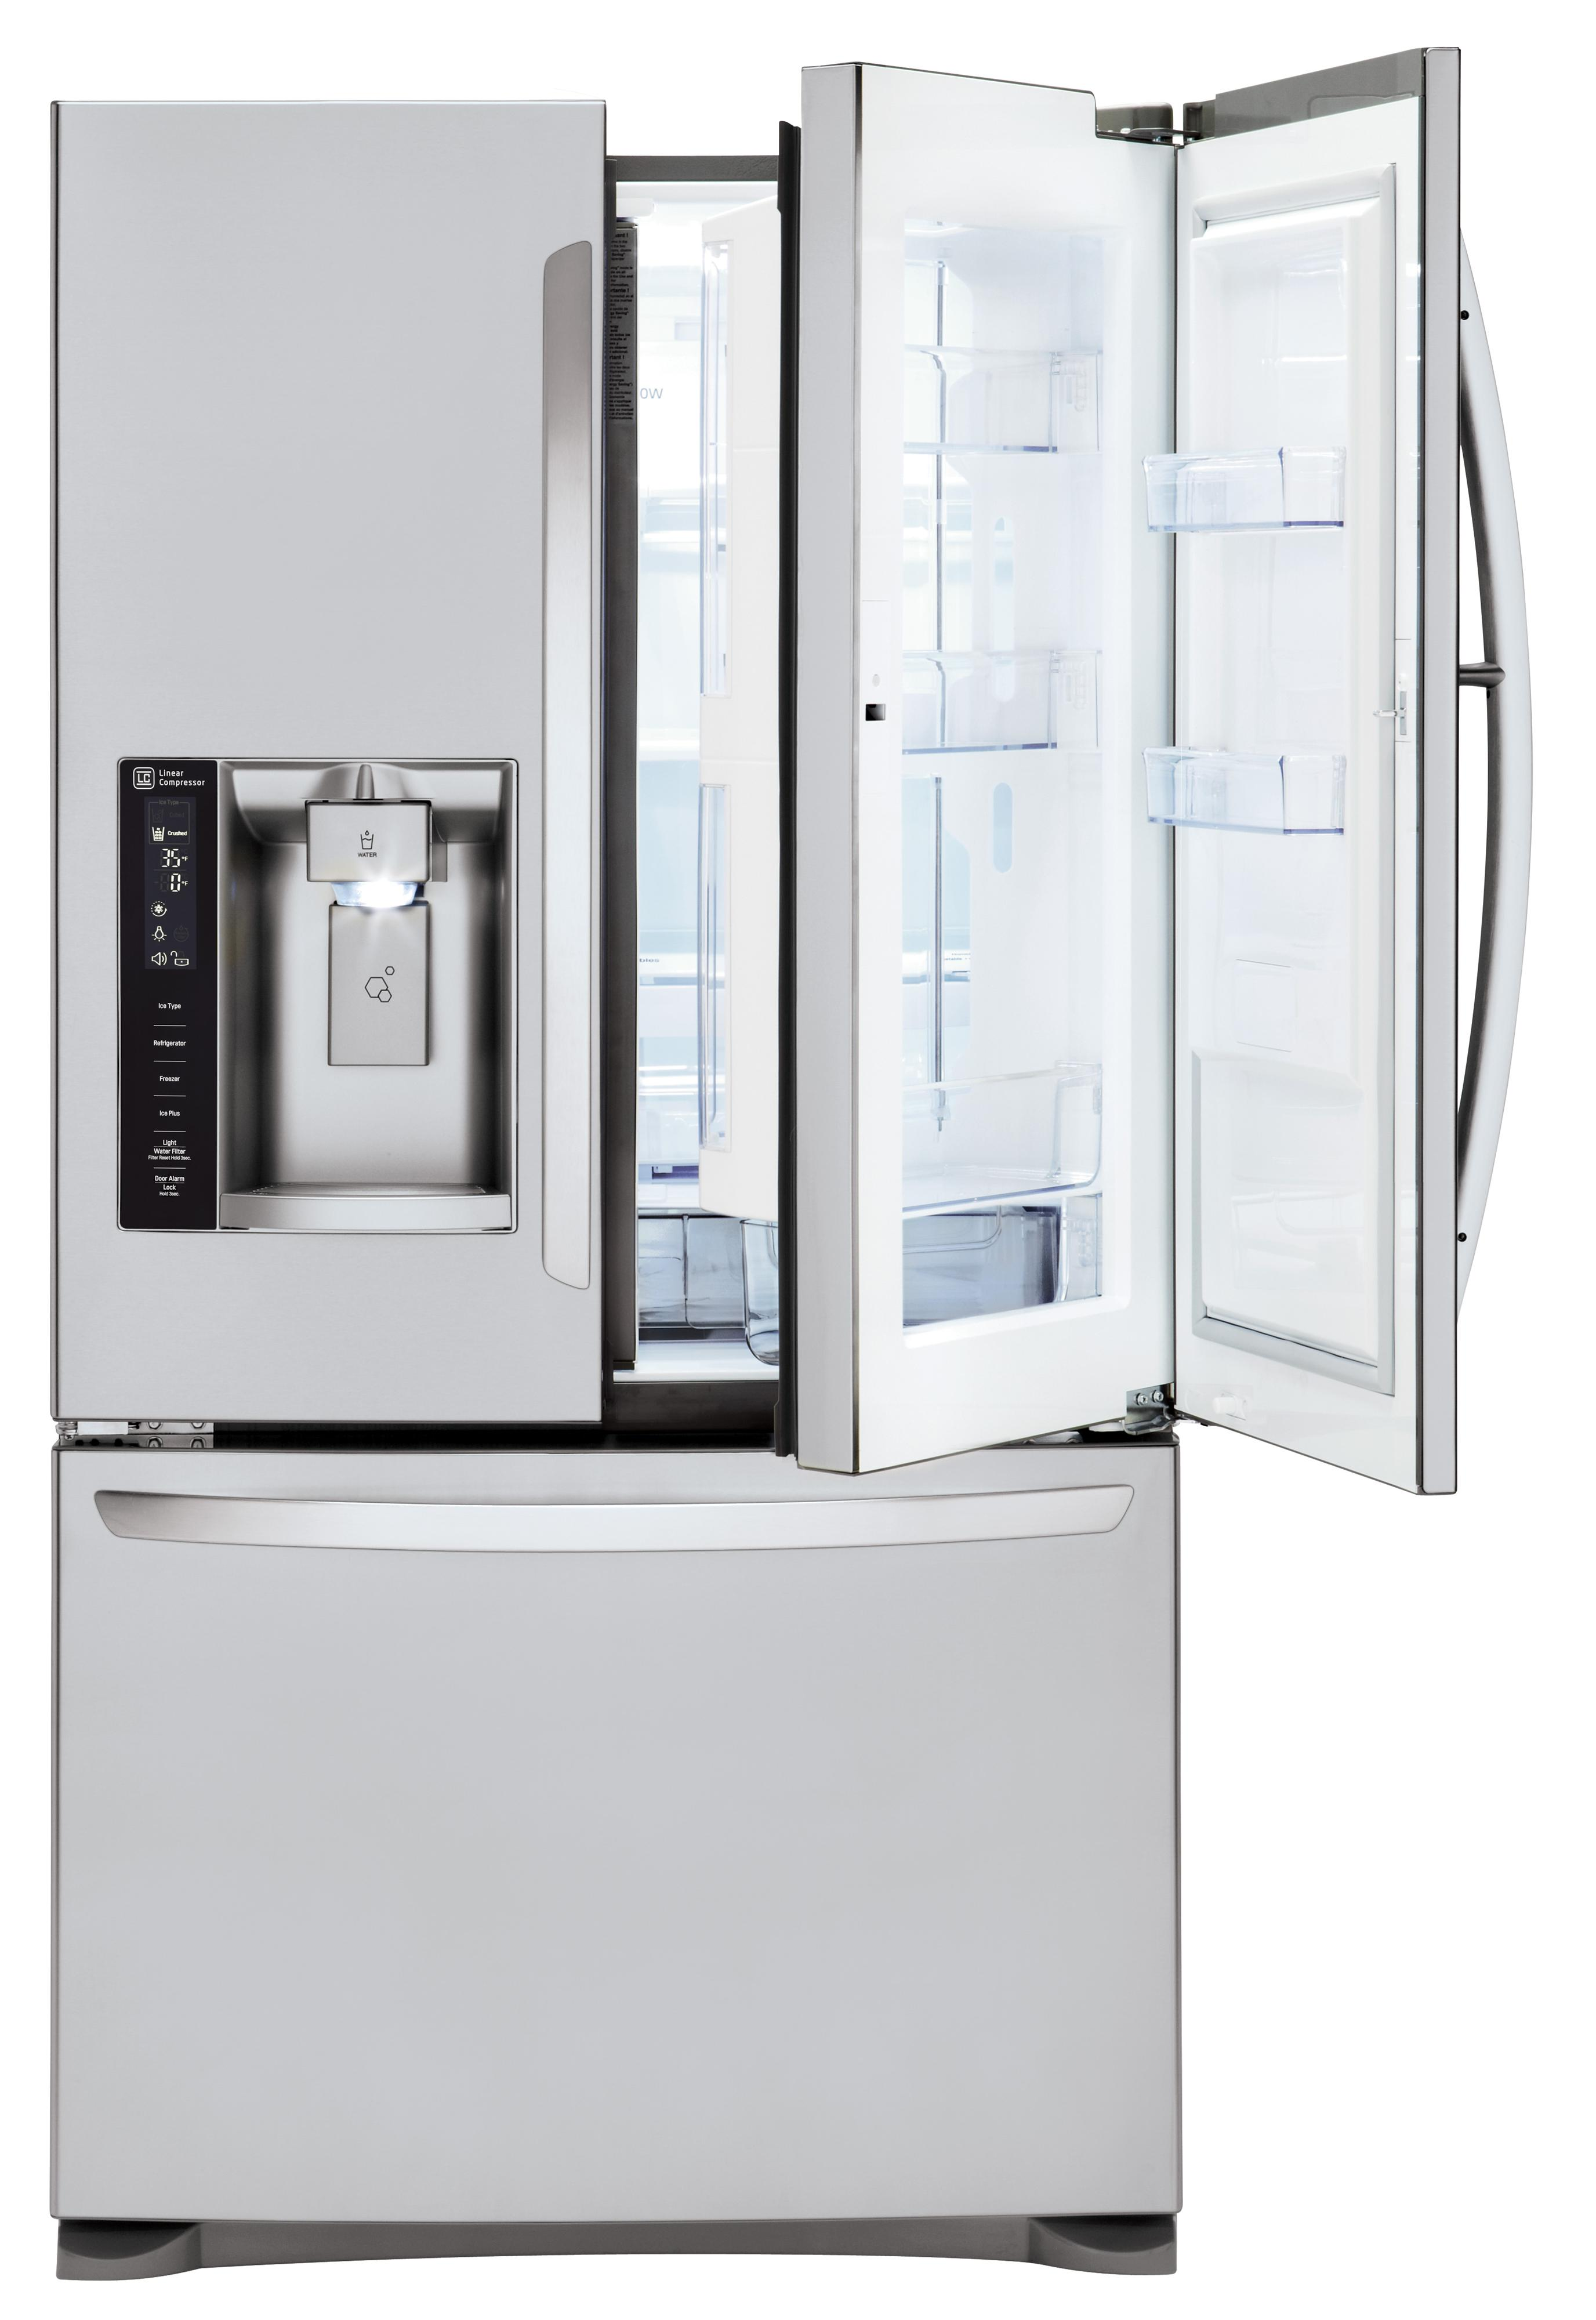 LG Appliances French Door Refrigerators 24 Cu. Ft 3 Door French Door Fridge - Item Number: LFXS24566S